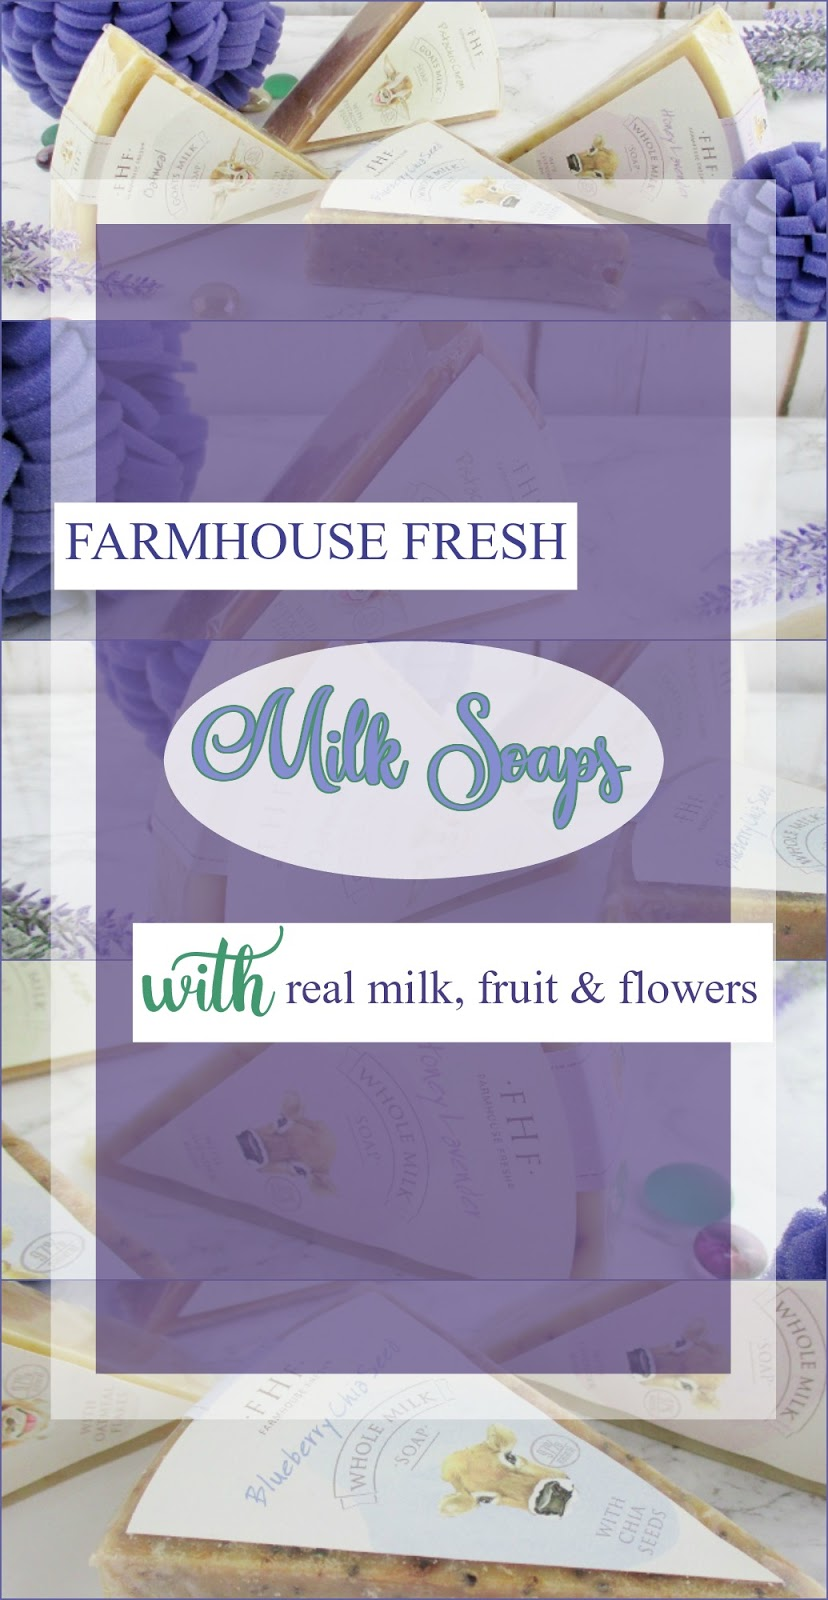 Farmhouse Fresh Milk Soaps are an Indulgent Holiday Treat Review